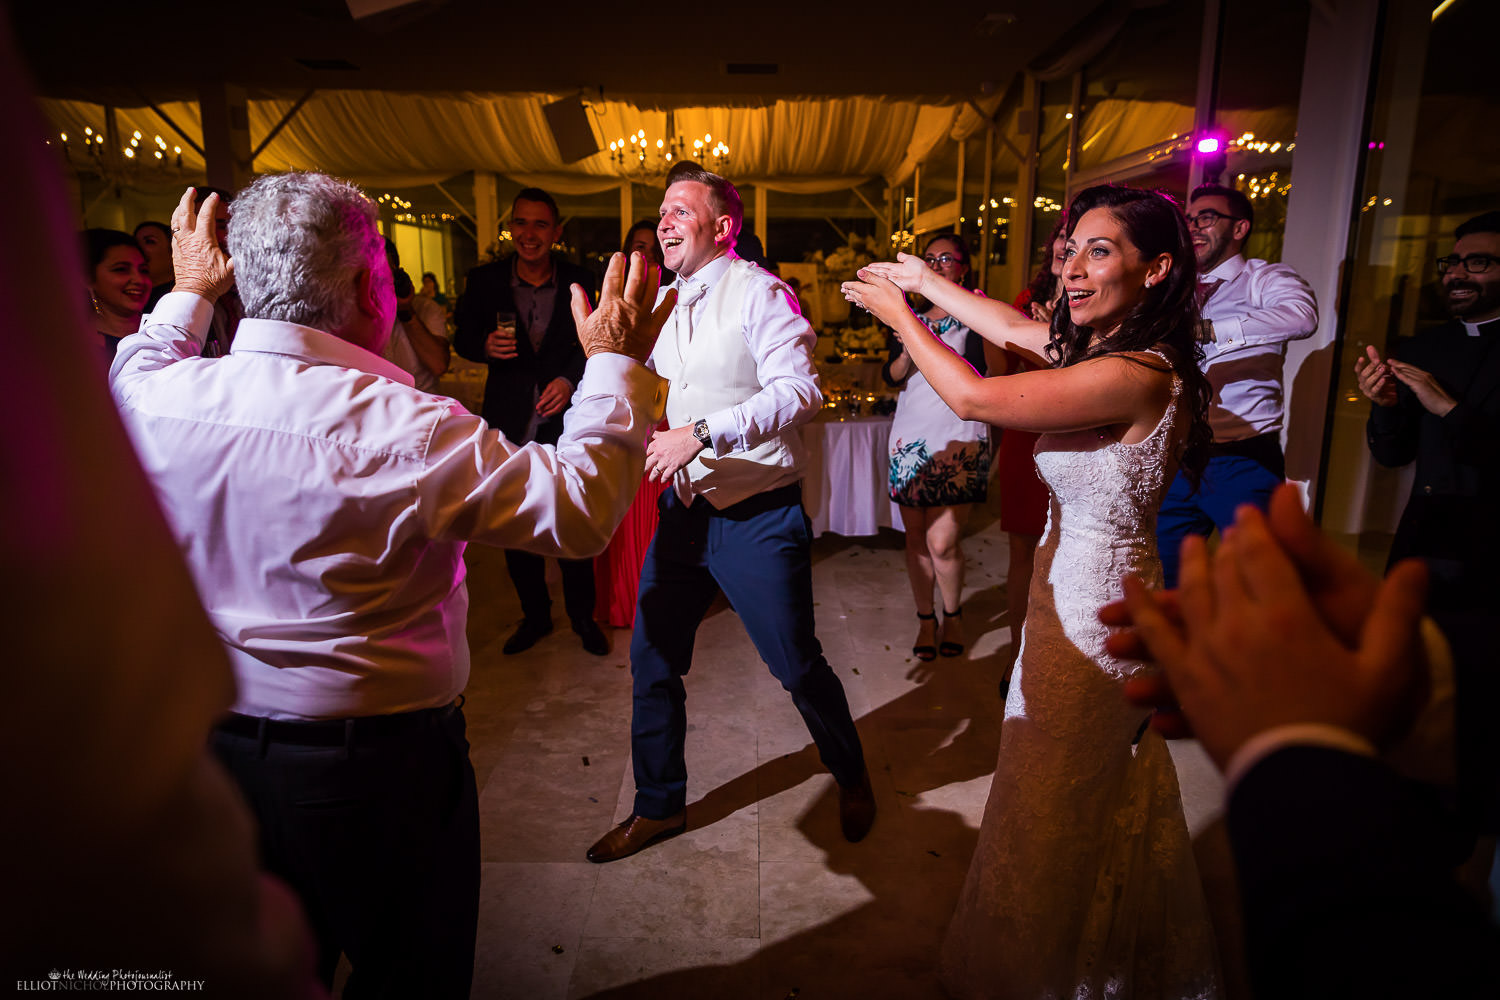 Bride and groom on the dance floor at their destination wedding reception. Photo by Elliot Nichol Photography.